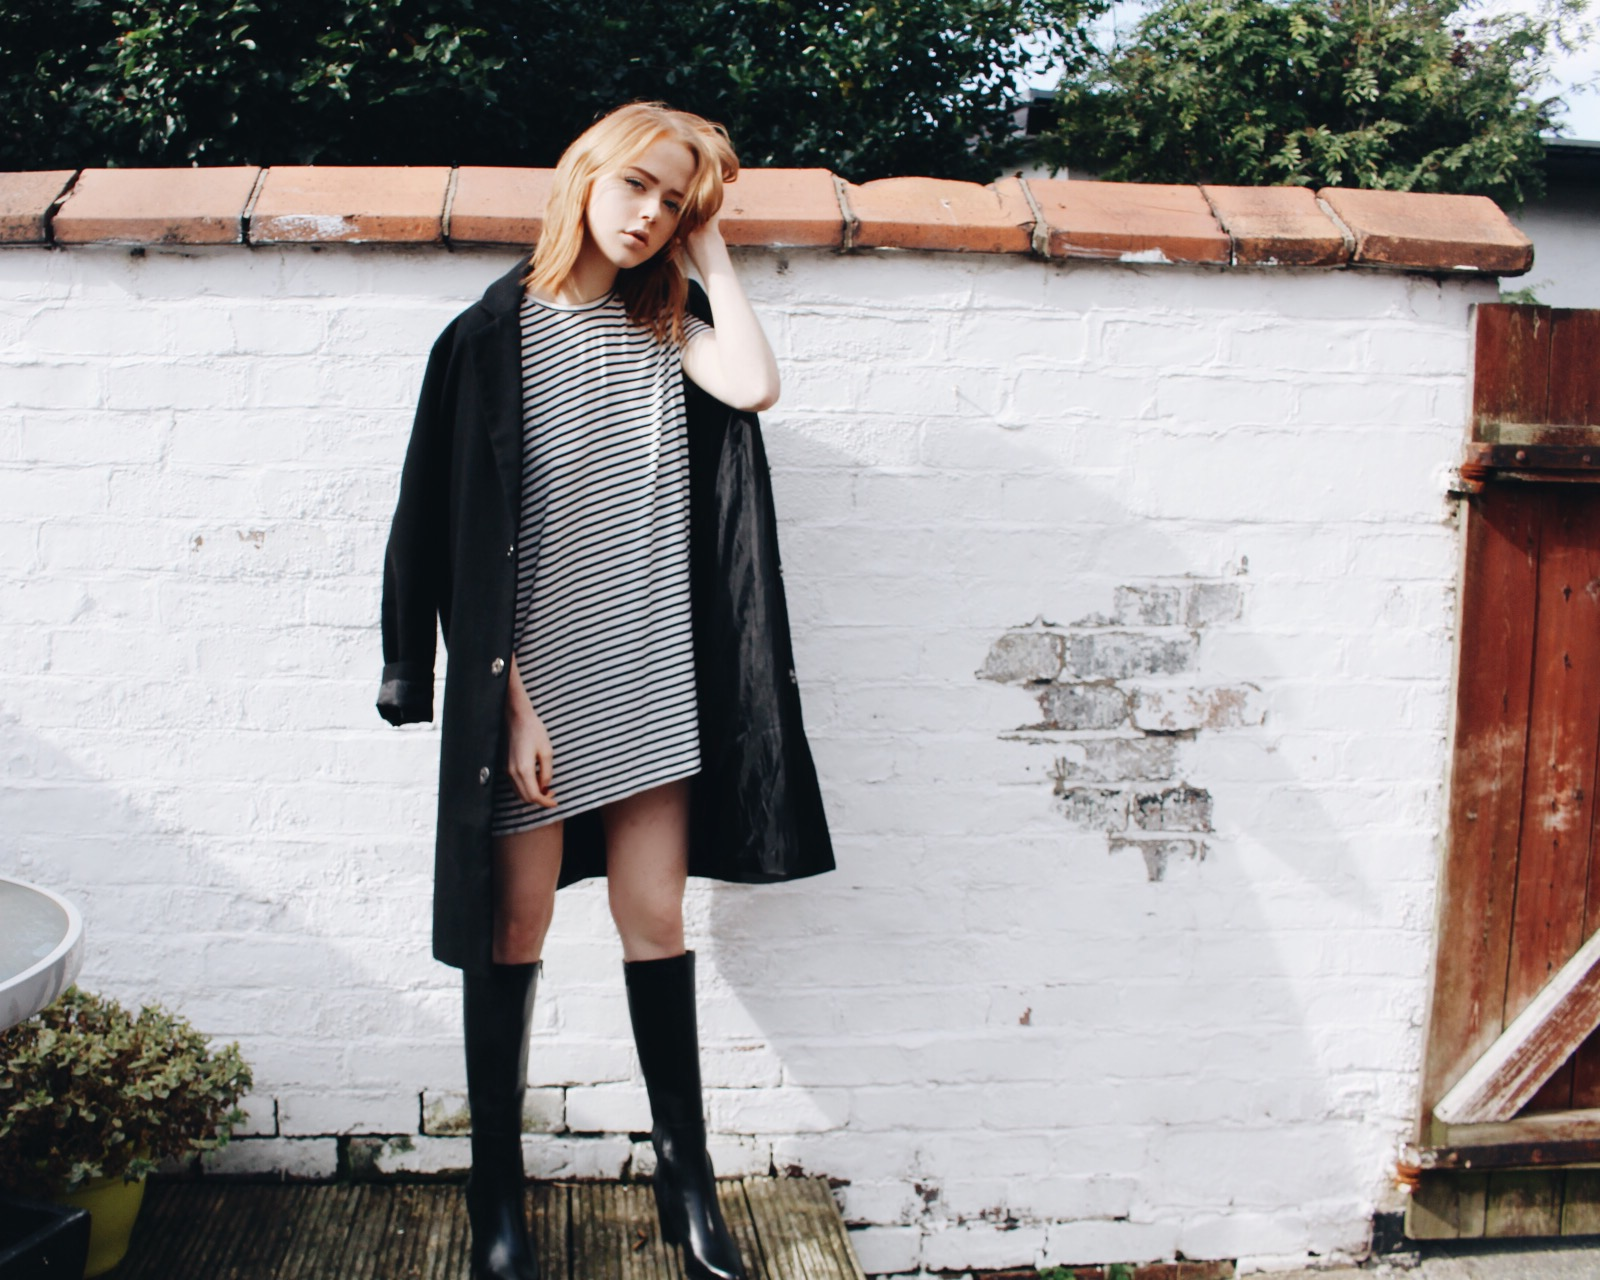 d7c76f7f54a Knee High Boots with Clarks | Holly Rebecca White